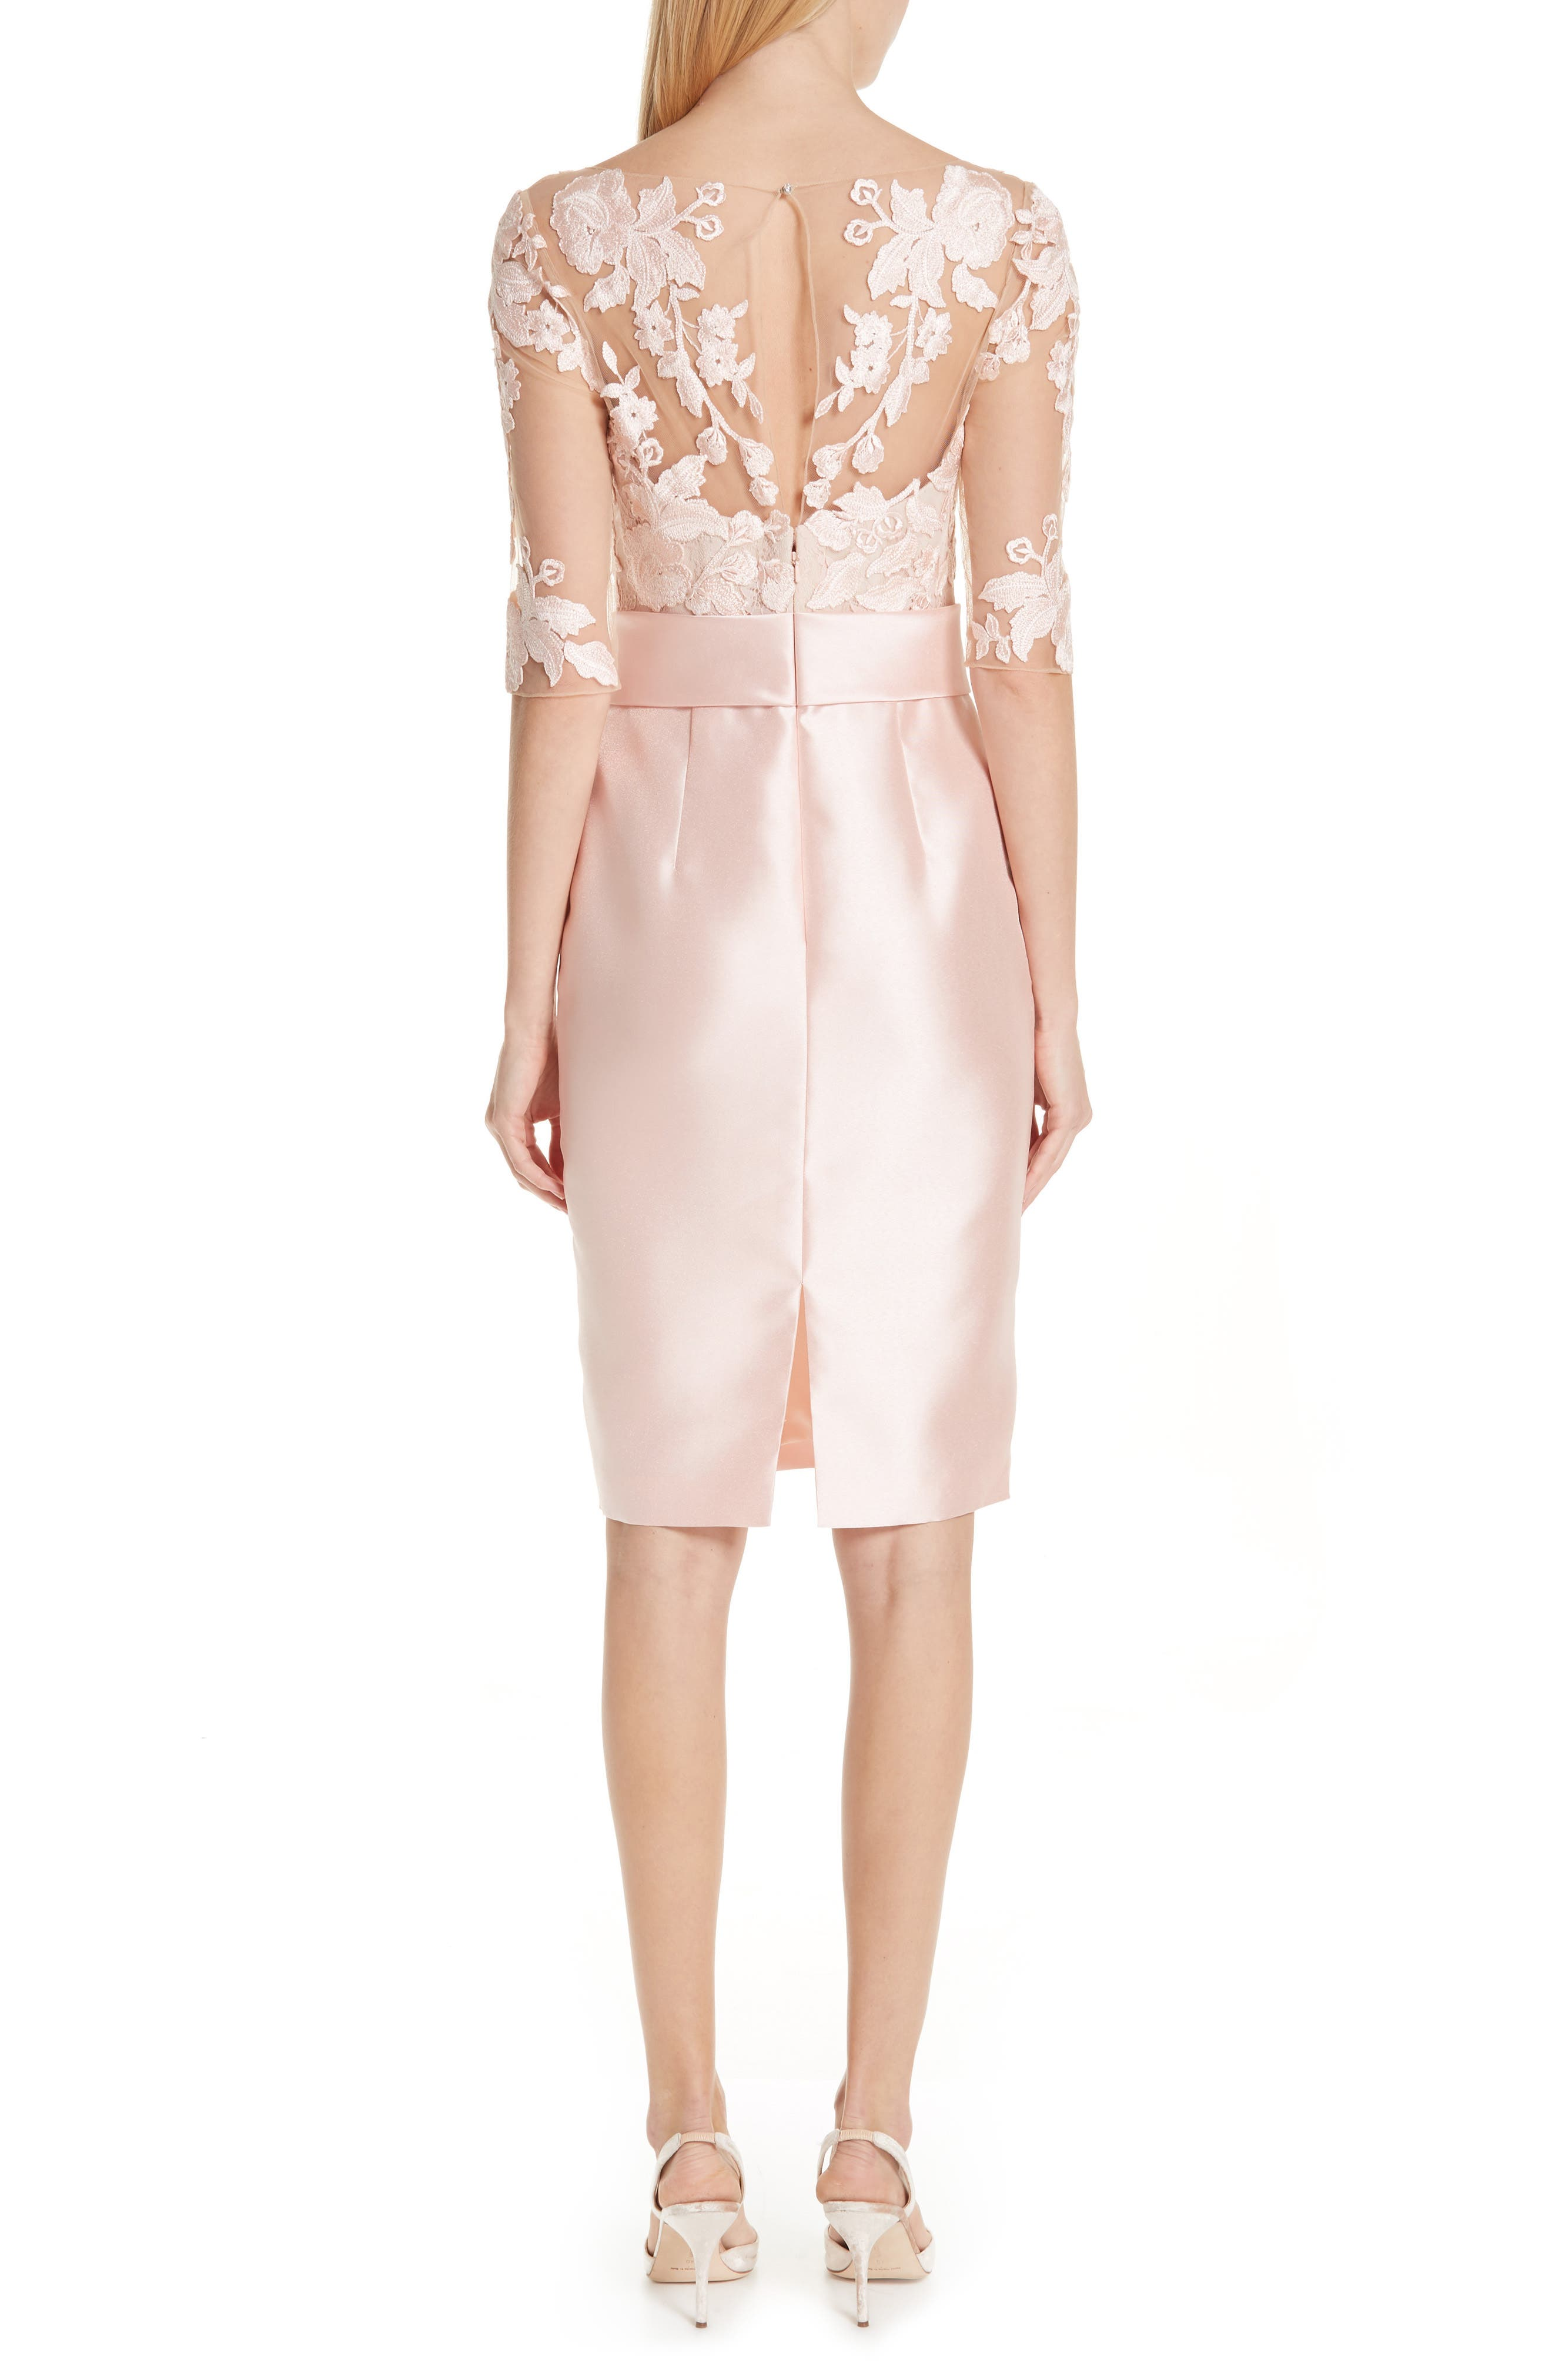 BADGLEY MISCHKA COLLECTION,                             Badgley Mischka Lace Accent Bow Cocktail Dress,                             Alternate thumbnail 2, color,                             PETAL